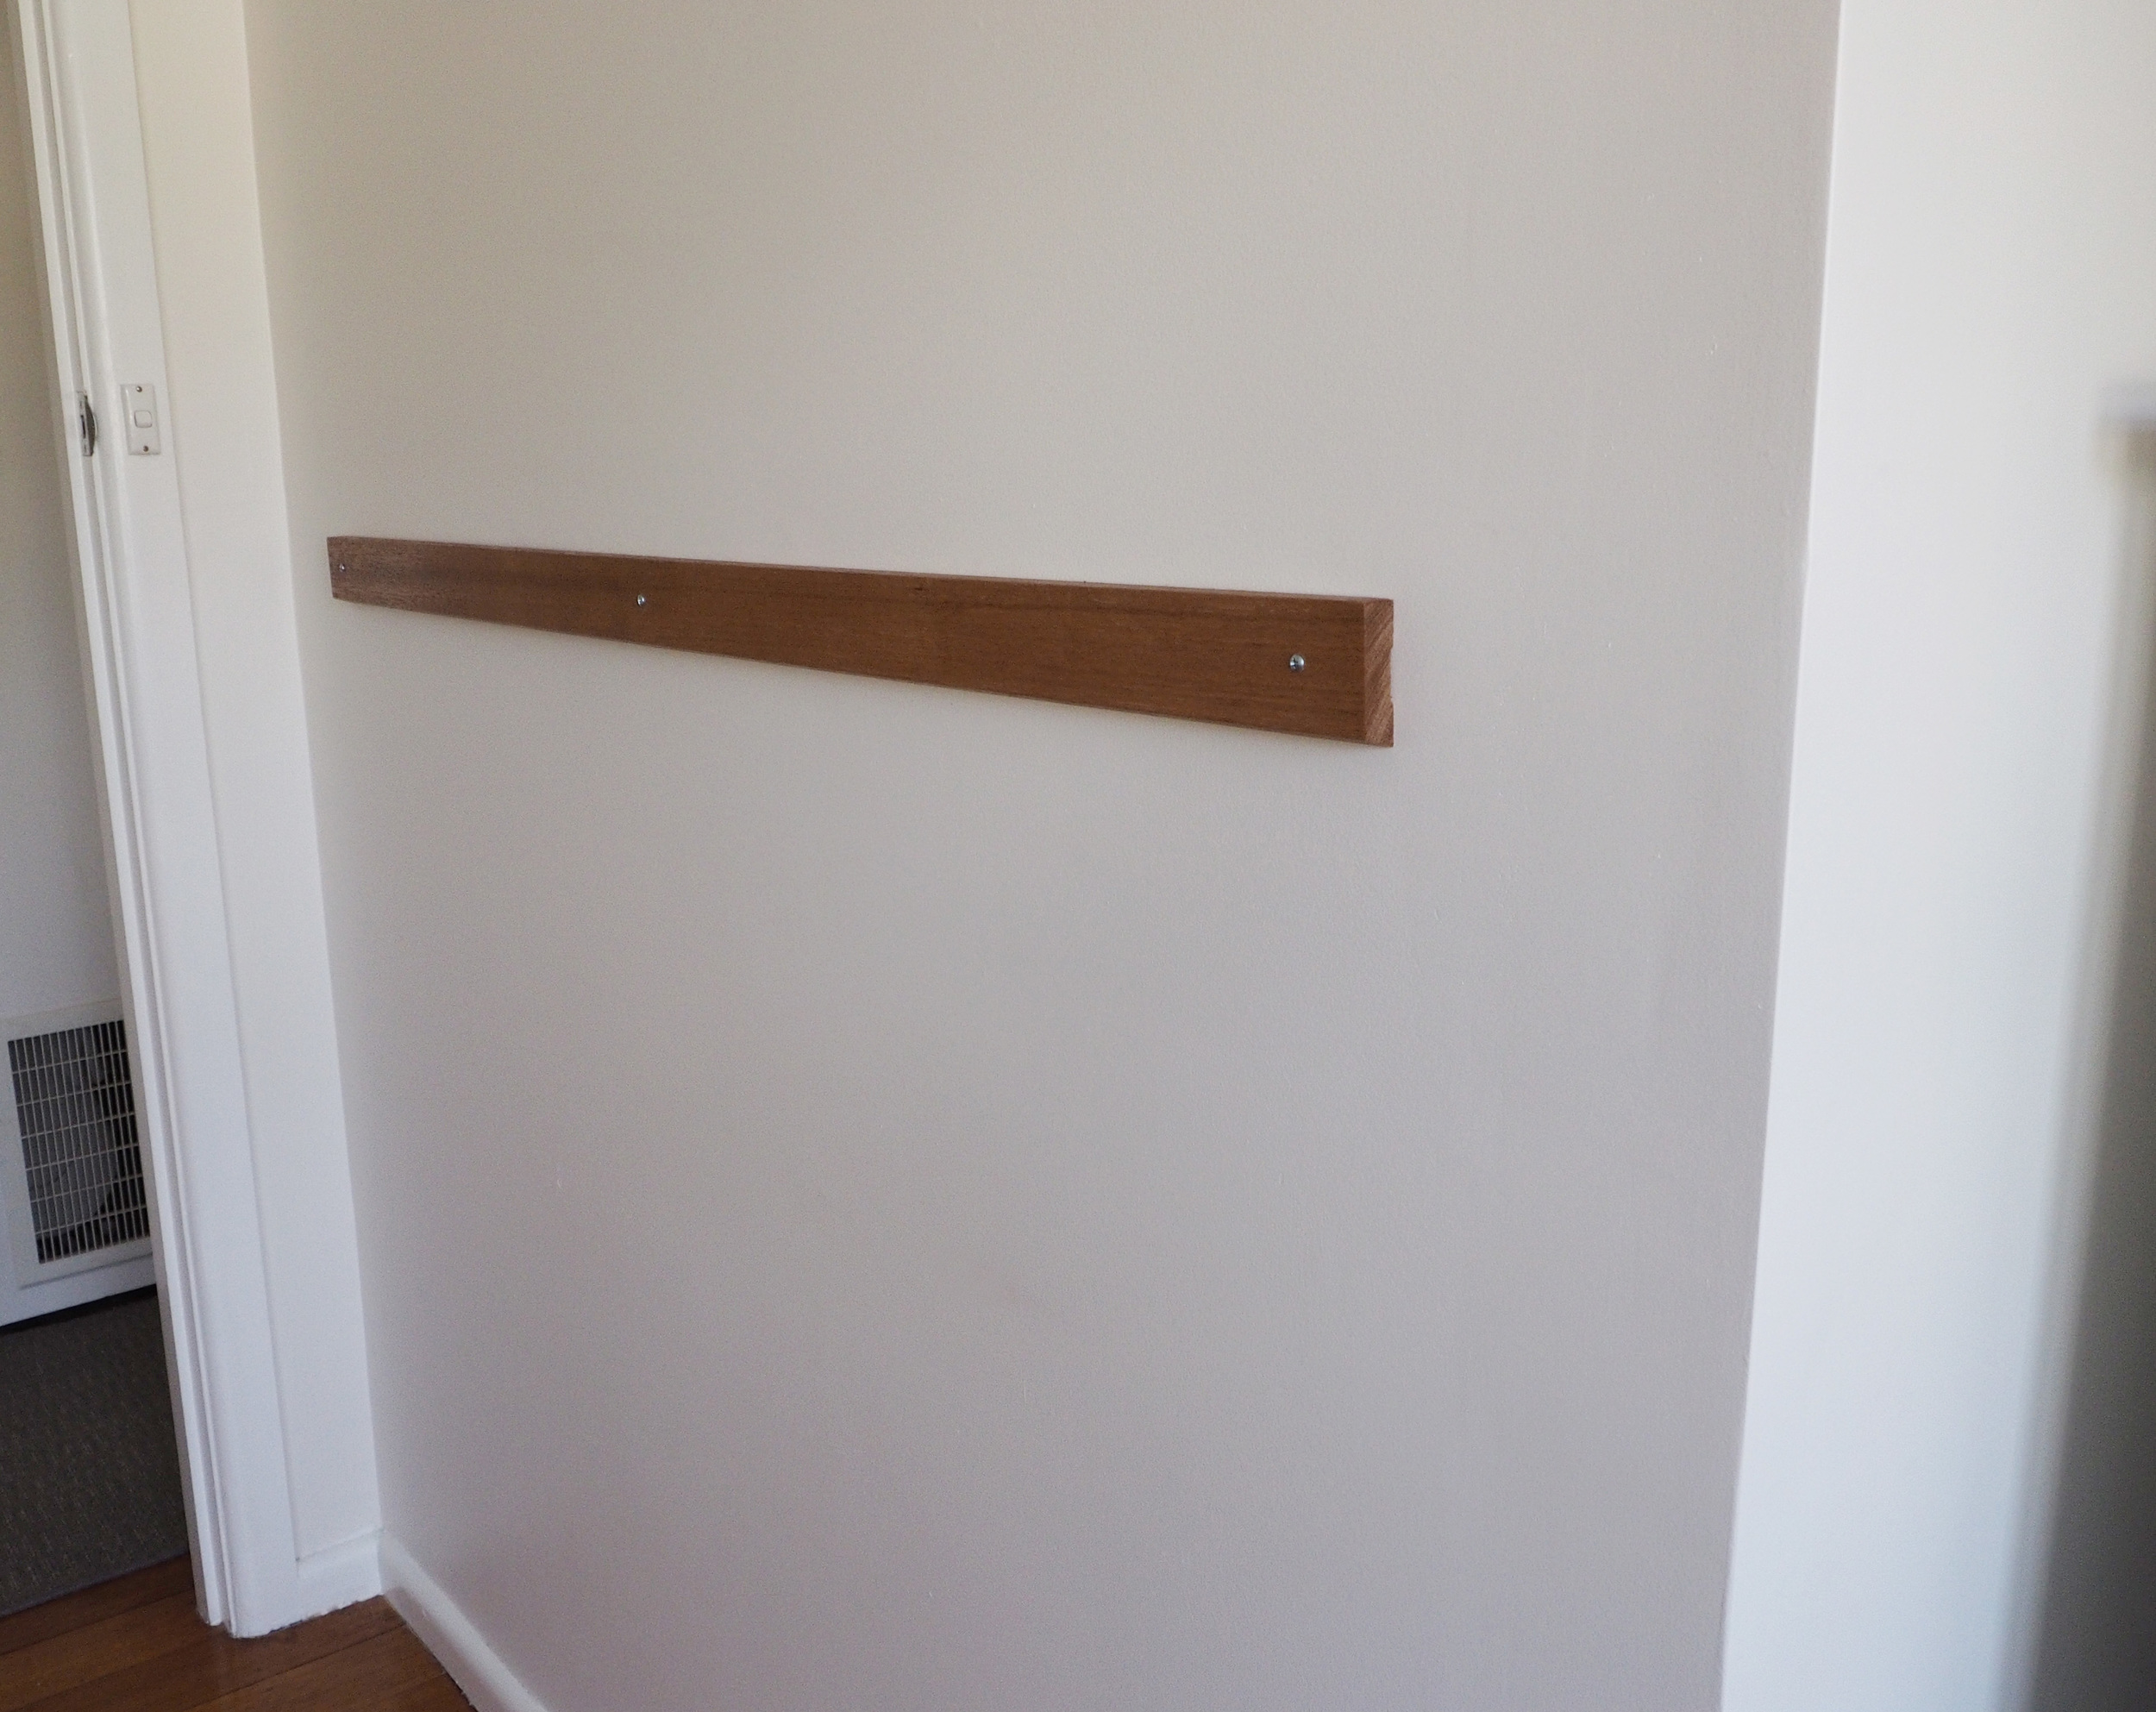 A piece of wood attached to a blank wall can be the perfect spot for an easy art display